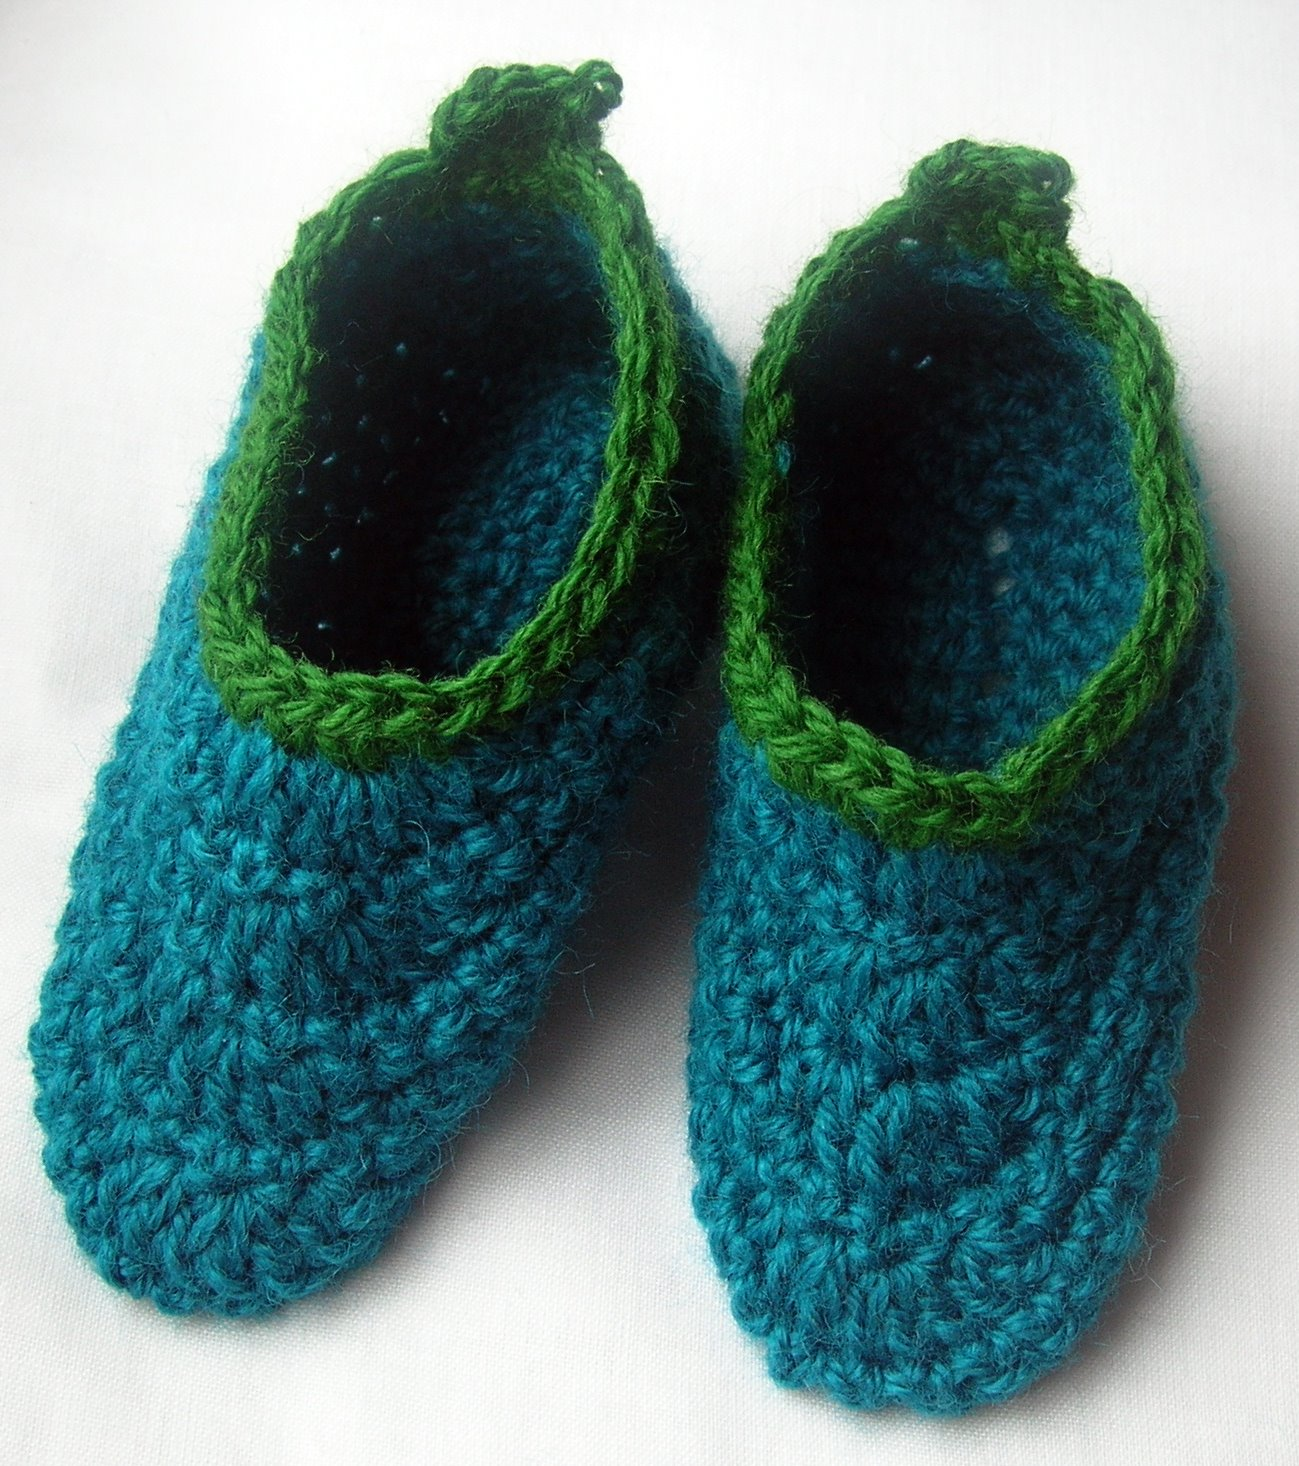 Crochet Patterns For Toddlers Slippers : Kids Crochet Slippers With Handspun Yarn